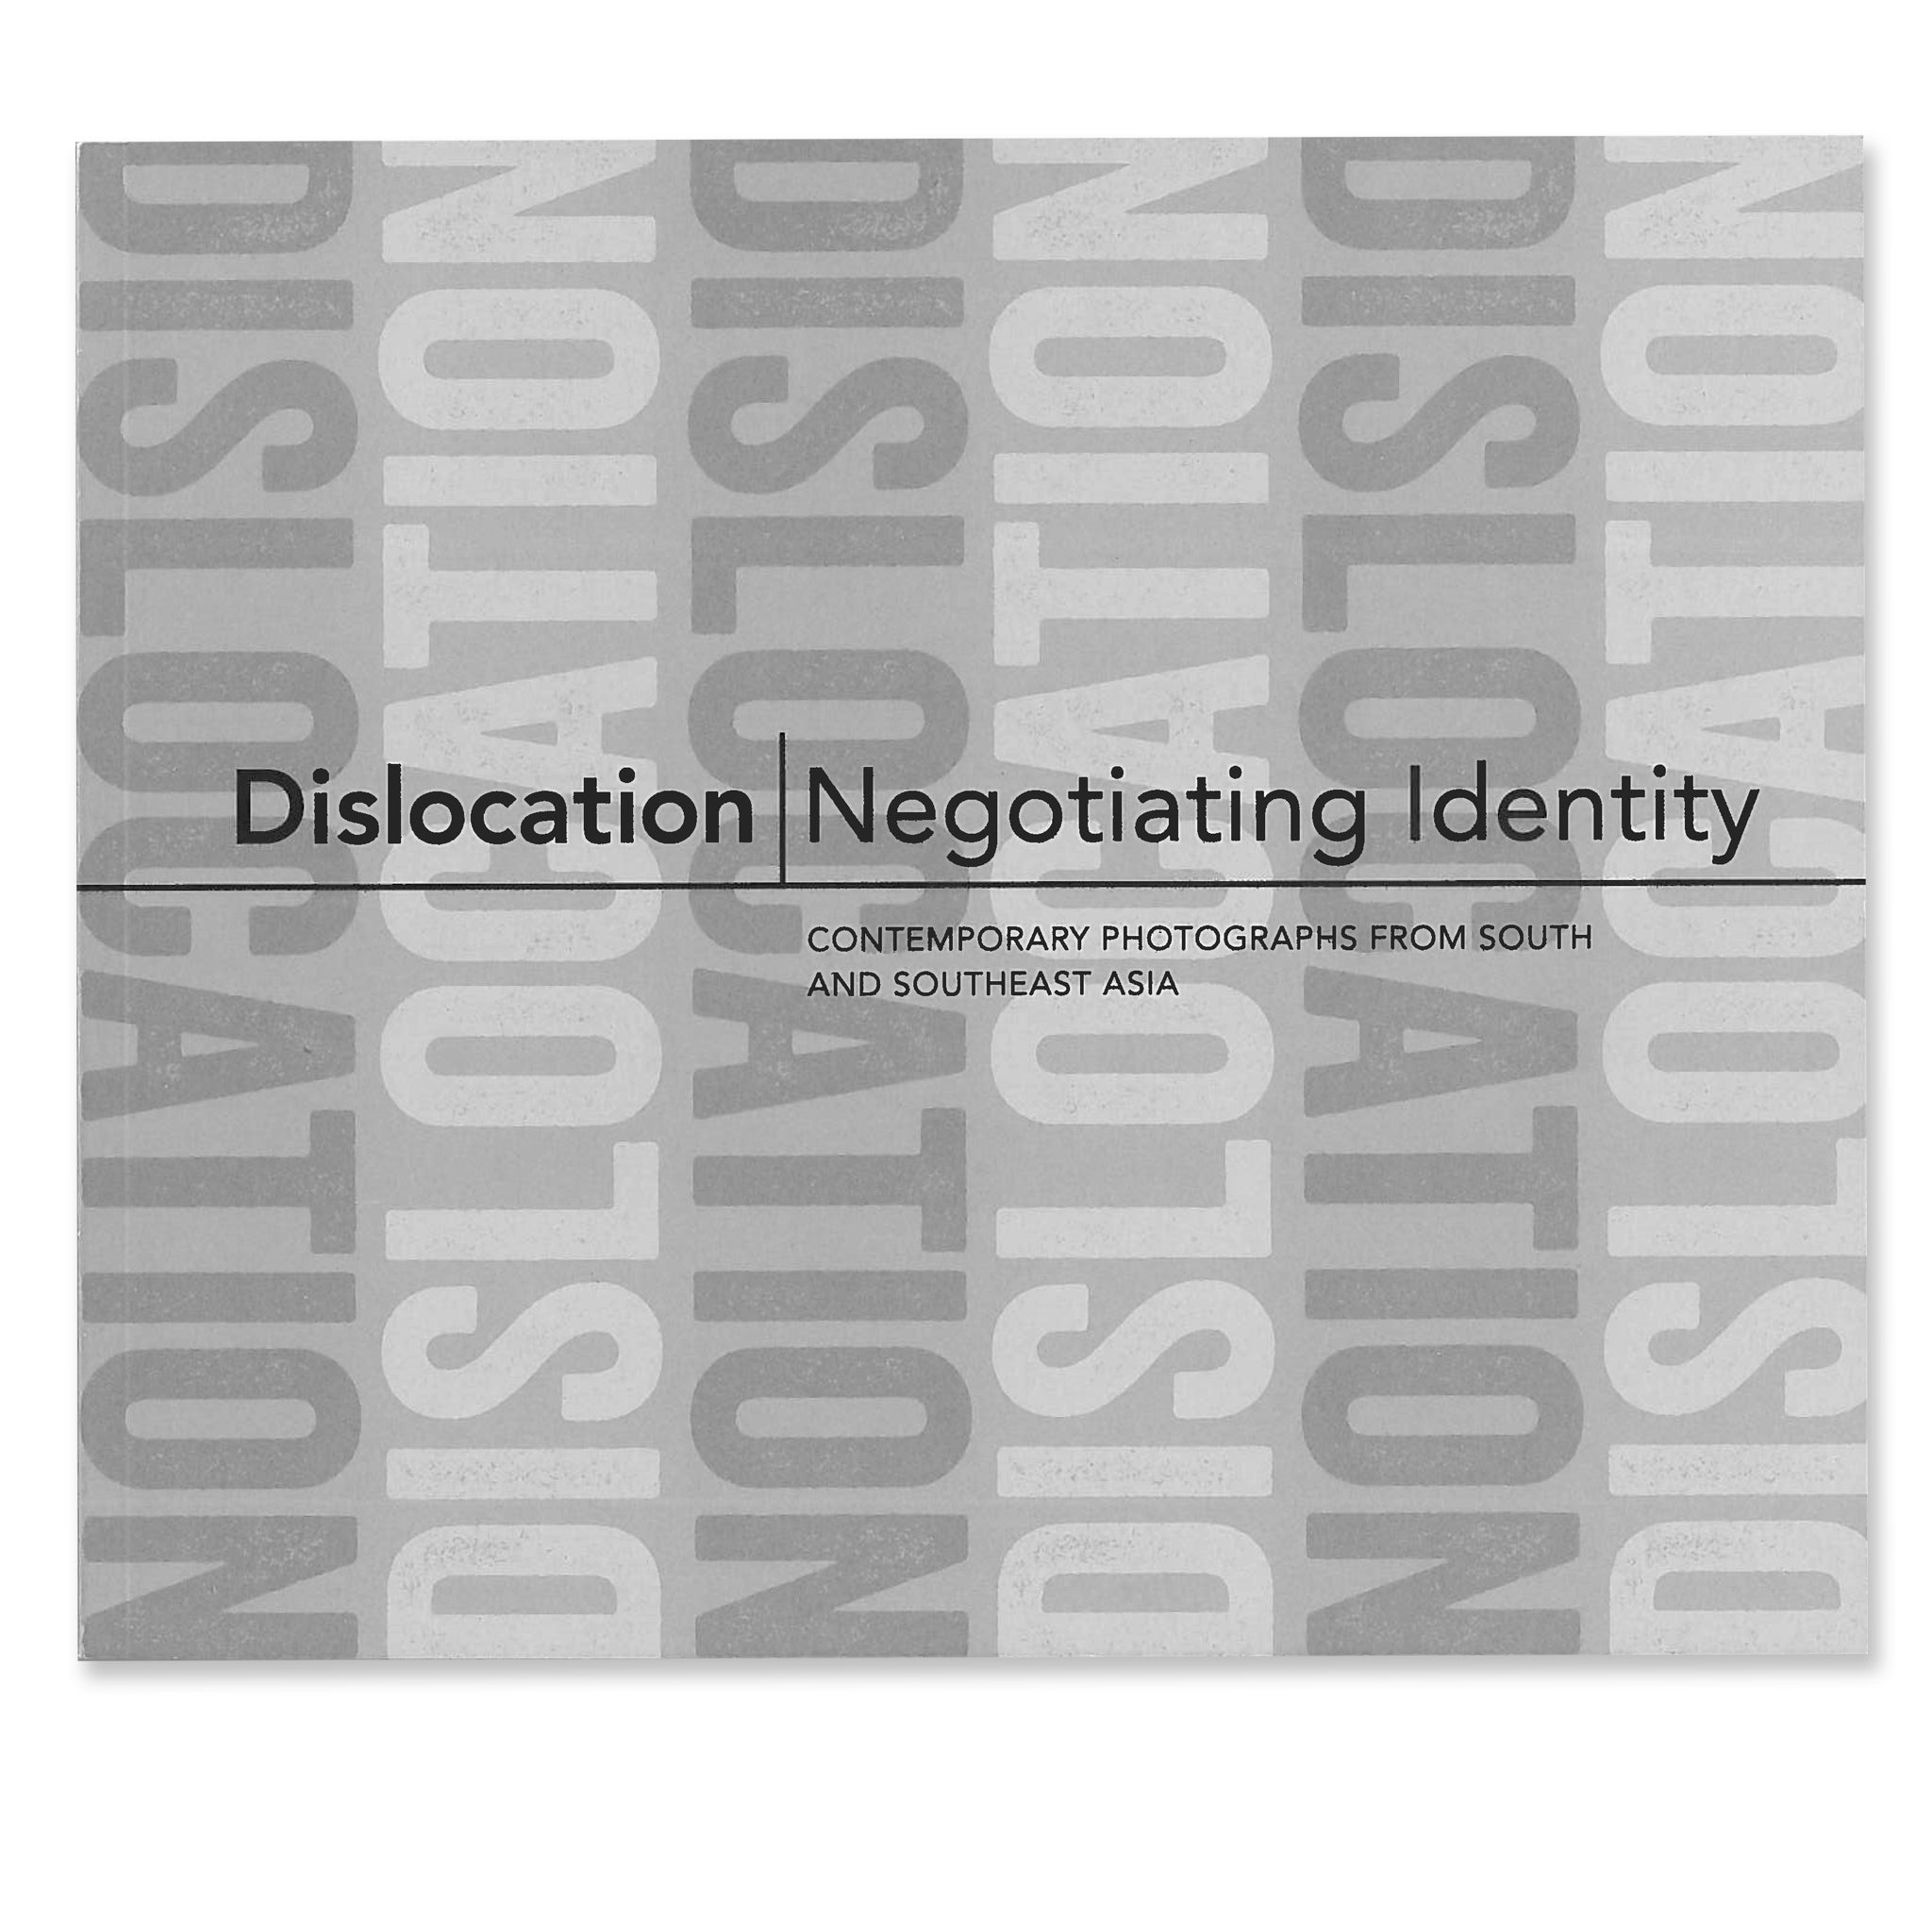 Dislocation Negotiating Identity Urban Experience exhibition catalogue exhibit catalog Asia Asian photography scma smith college museum of art